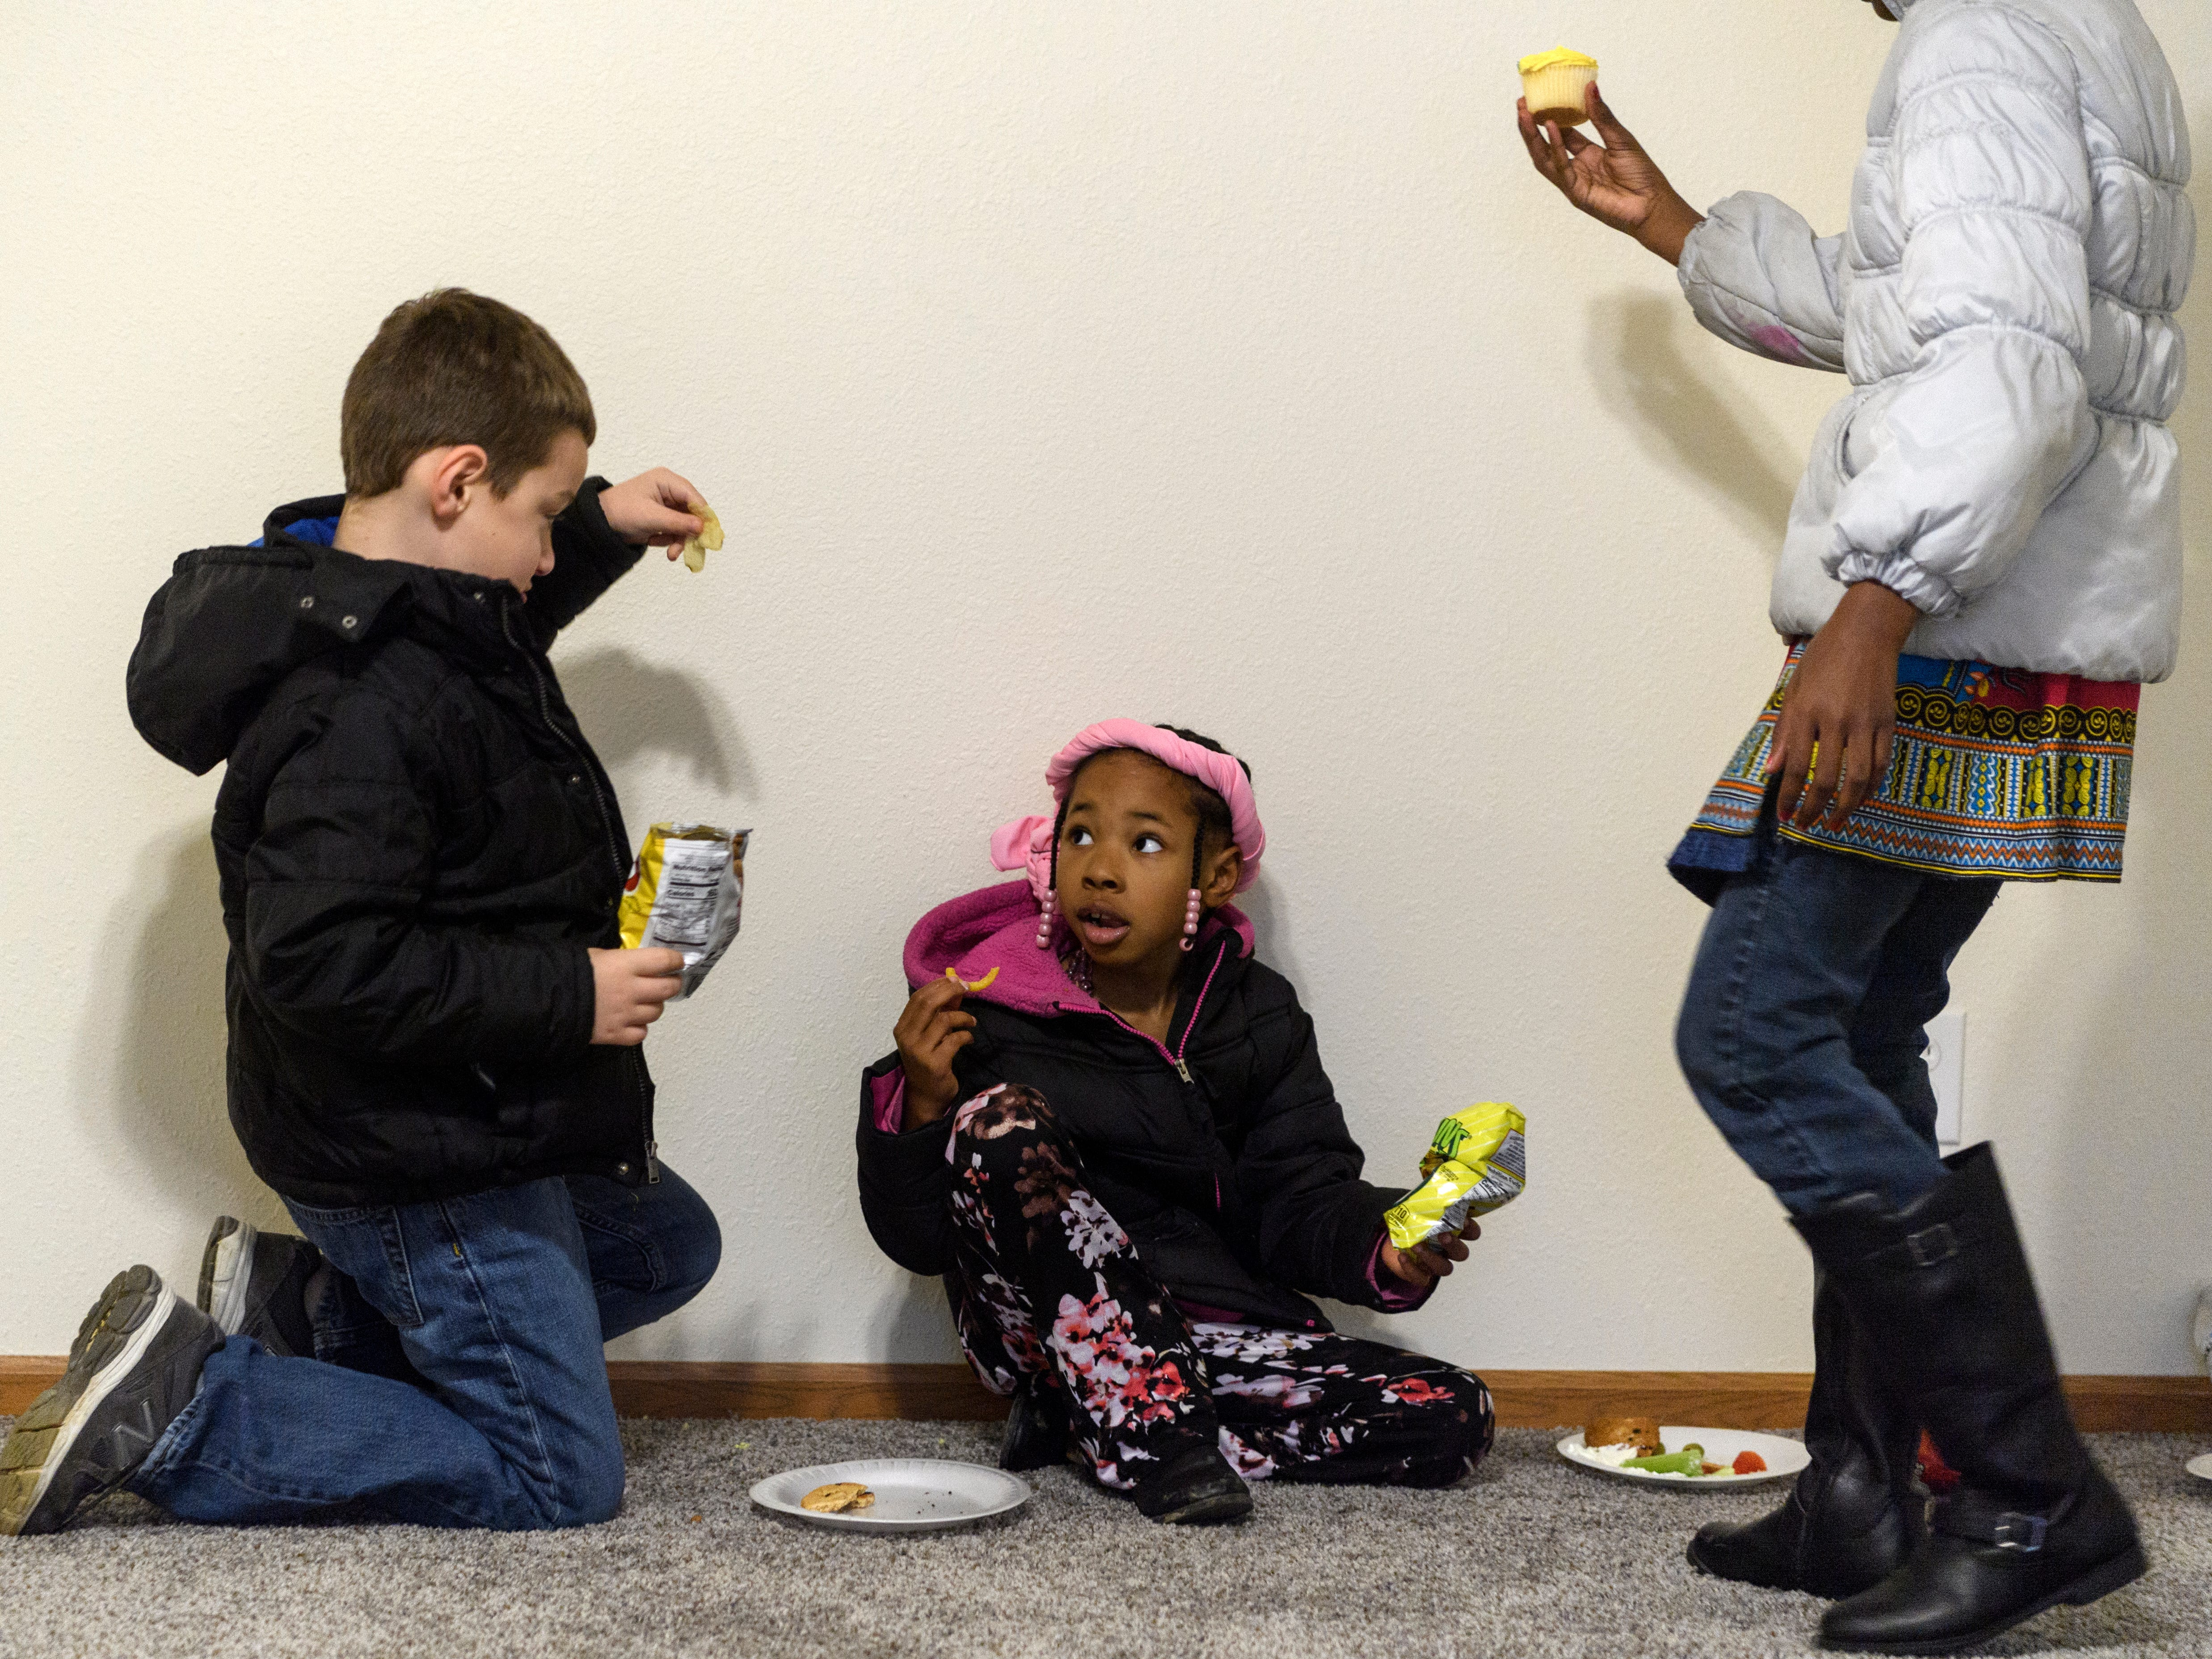 Shane Barclay, 7, from left, chats with Zorea Kince, 7, and A'miah Kince, 9, as they eat snacks in the living room of the new Kince family home following the 500th Habitat for Humanity home dedication ceremony on Bedford Avenue in Evansville, Ind., Thursday, Dec. 20, 2018. The Kinces built a five bedroom home that features two bathrooms and ample kitchen and living room space.